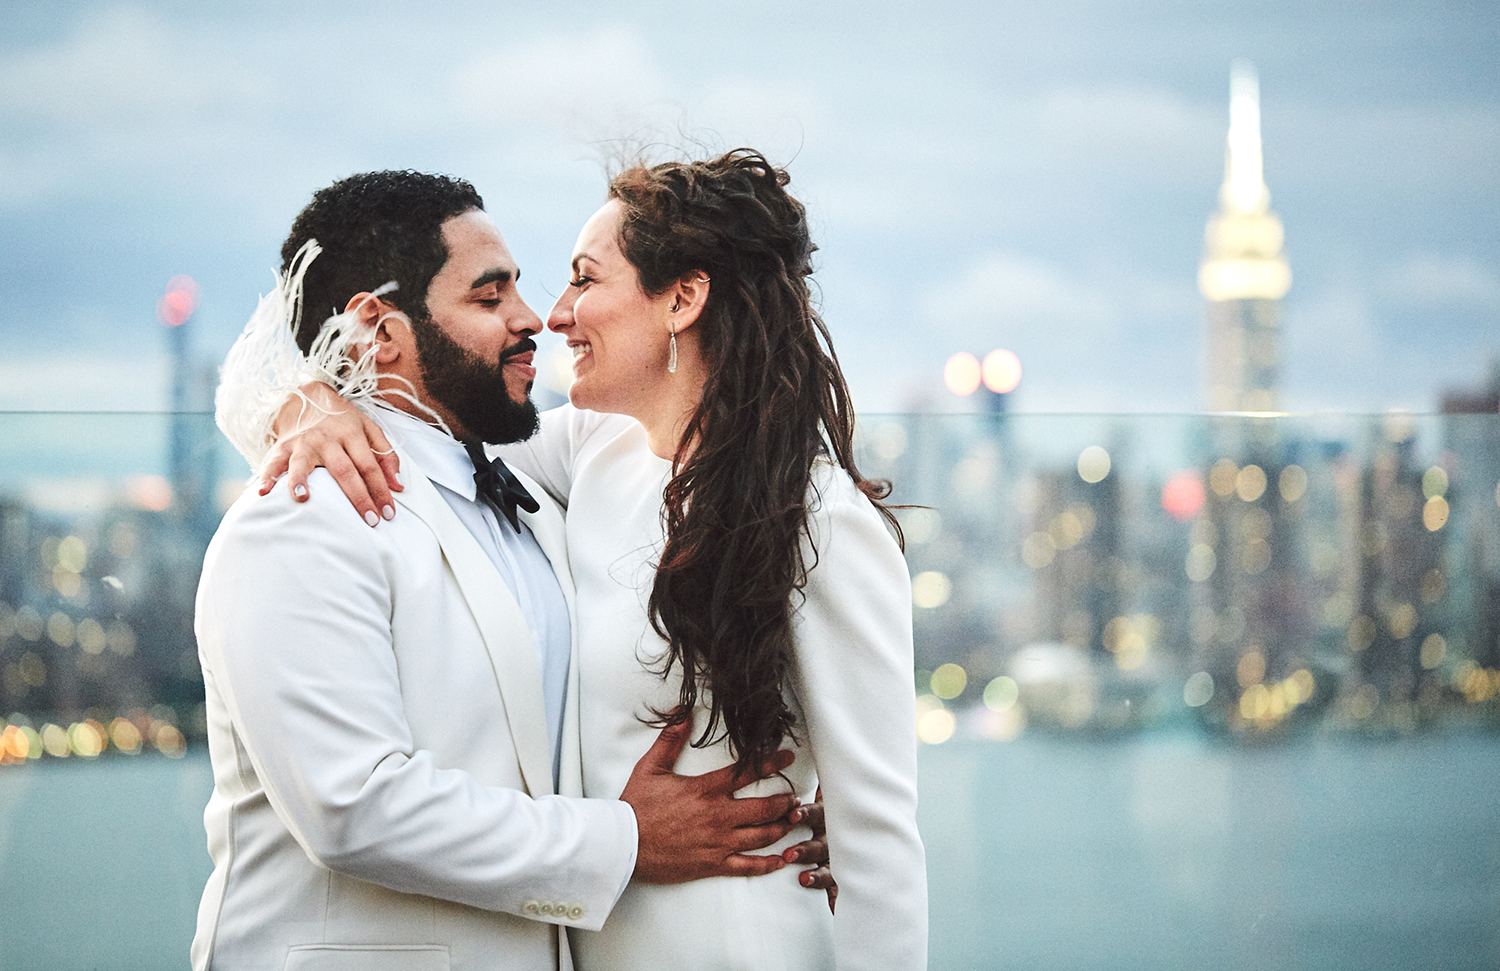 170930_WilliamValeWeddingPhotography_BrooklynWeddingPhotographer_By_BriJohnsonWeddings_0130.jpg